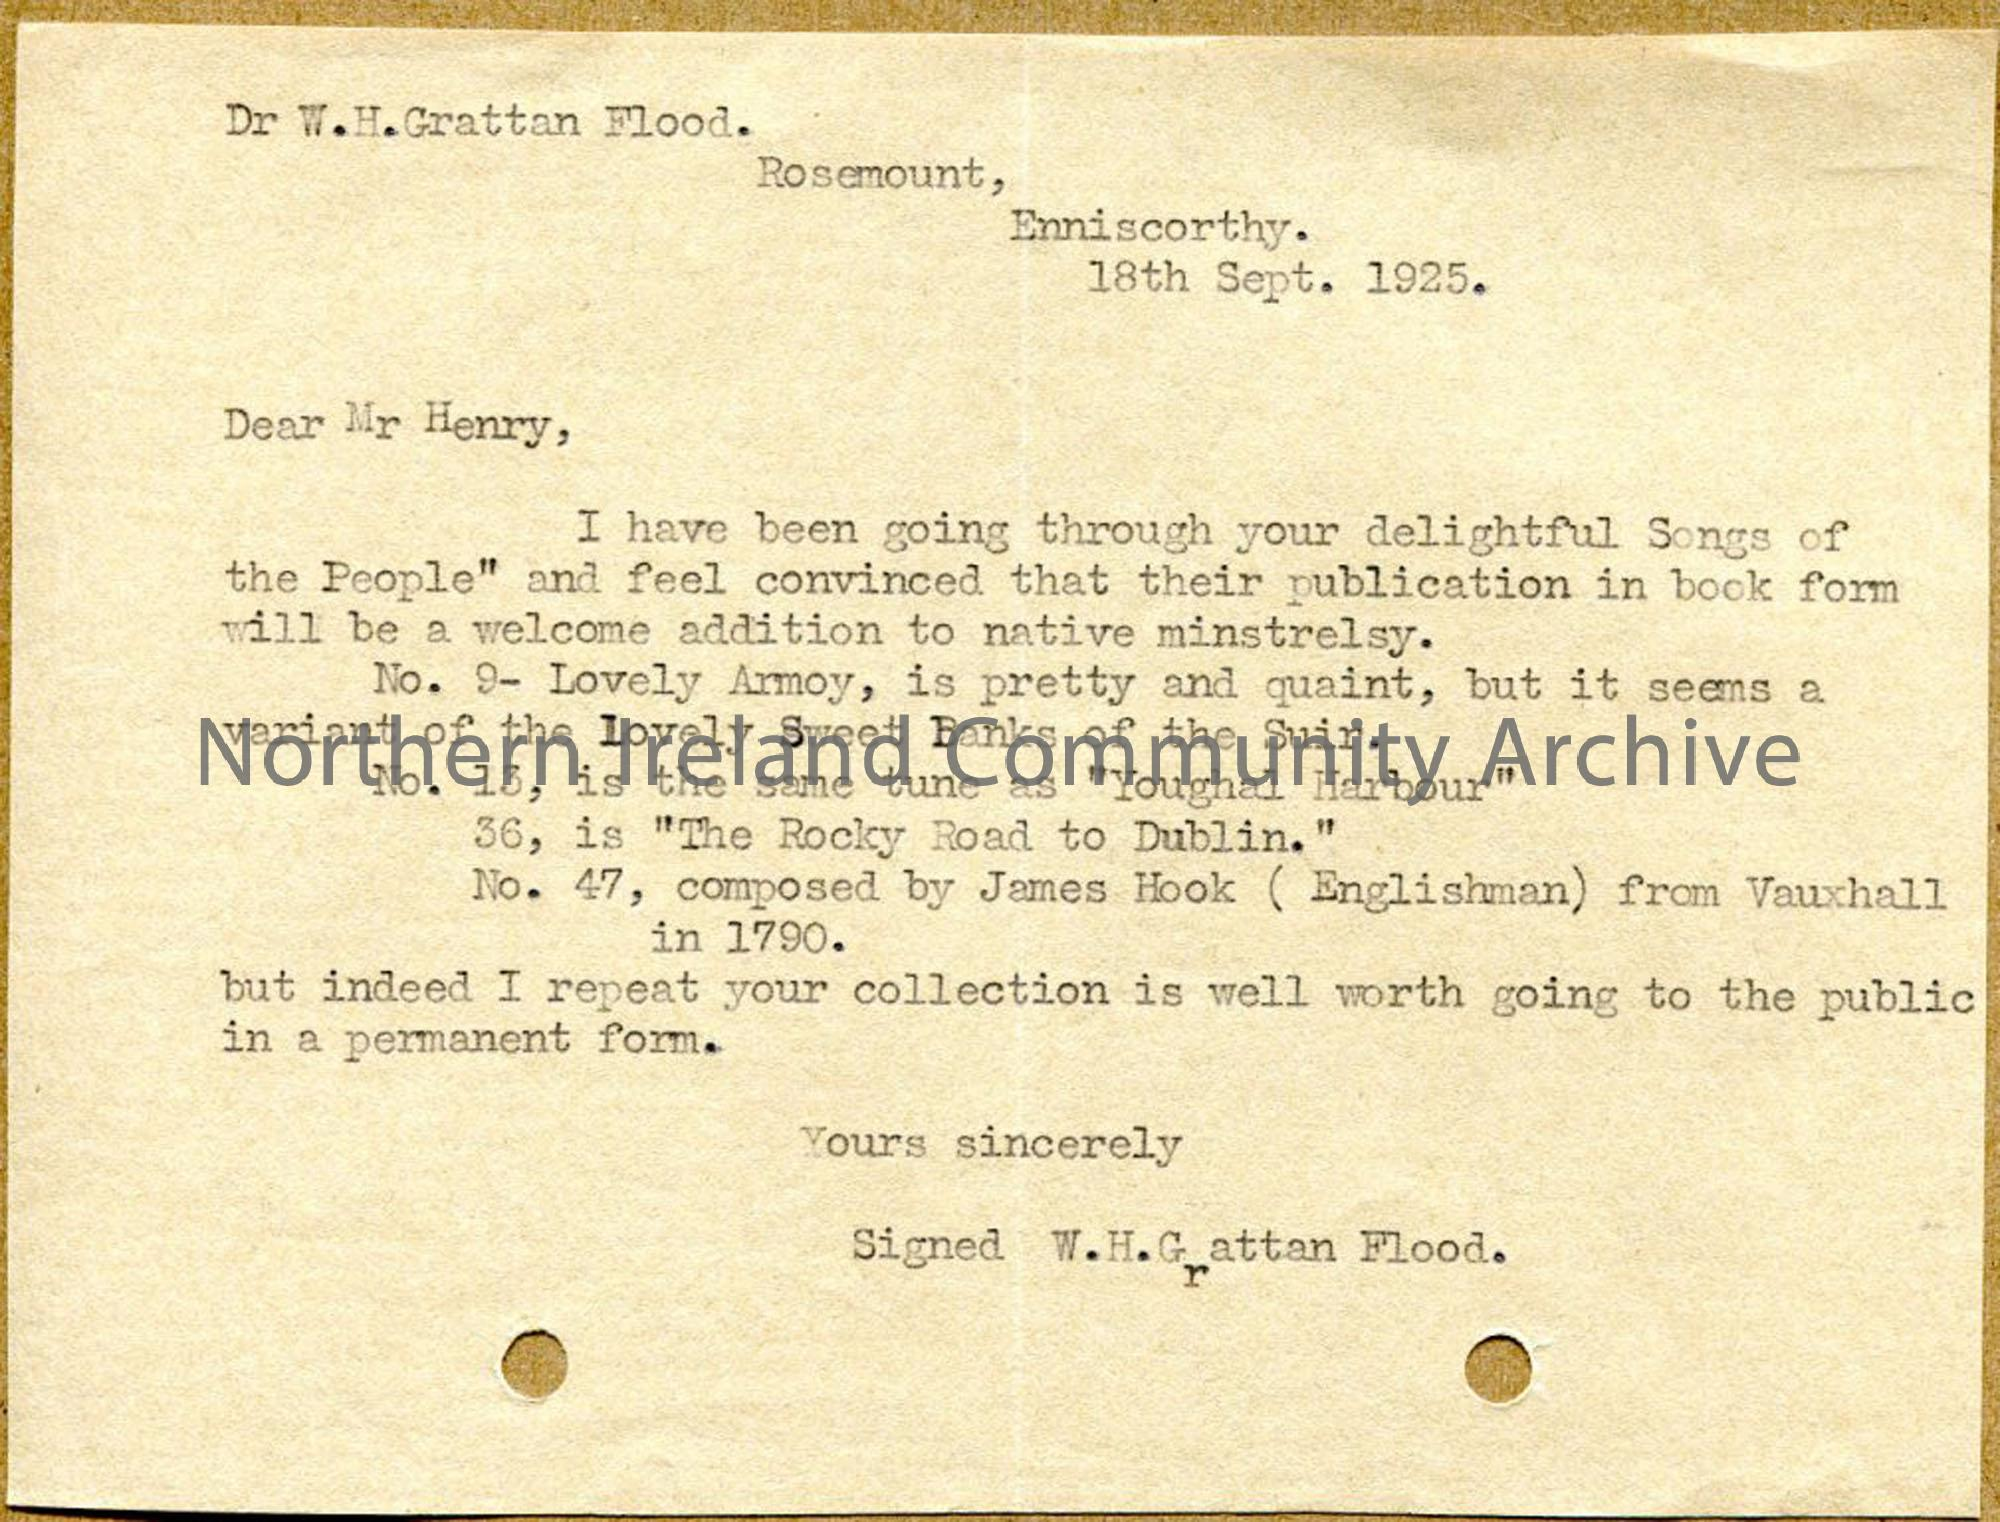 Letter from W.H.G Grattan, dated 18.9.1925